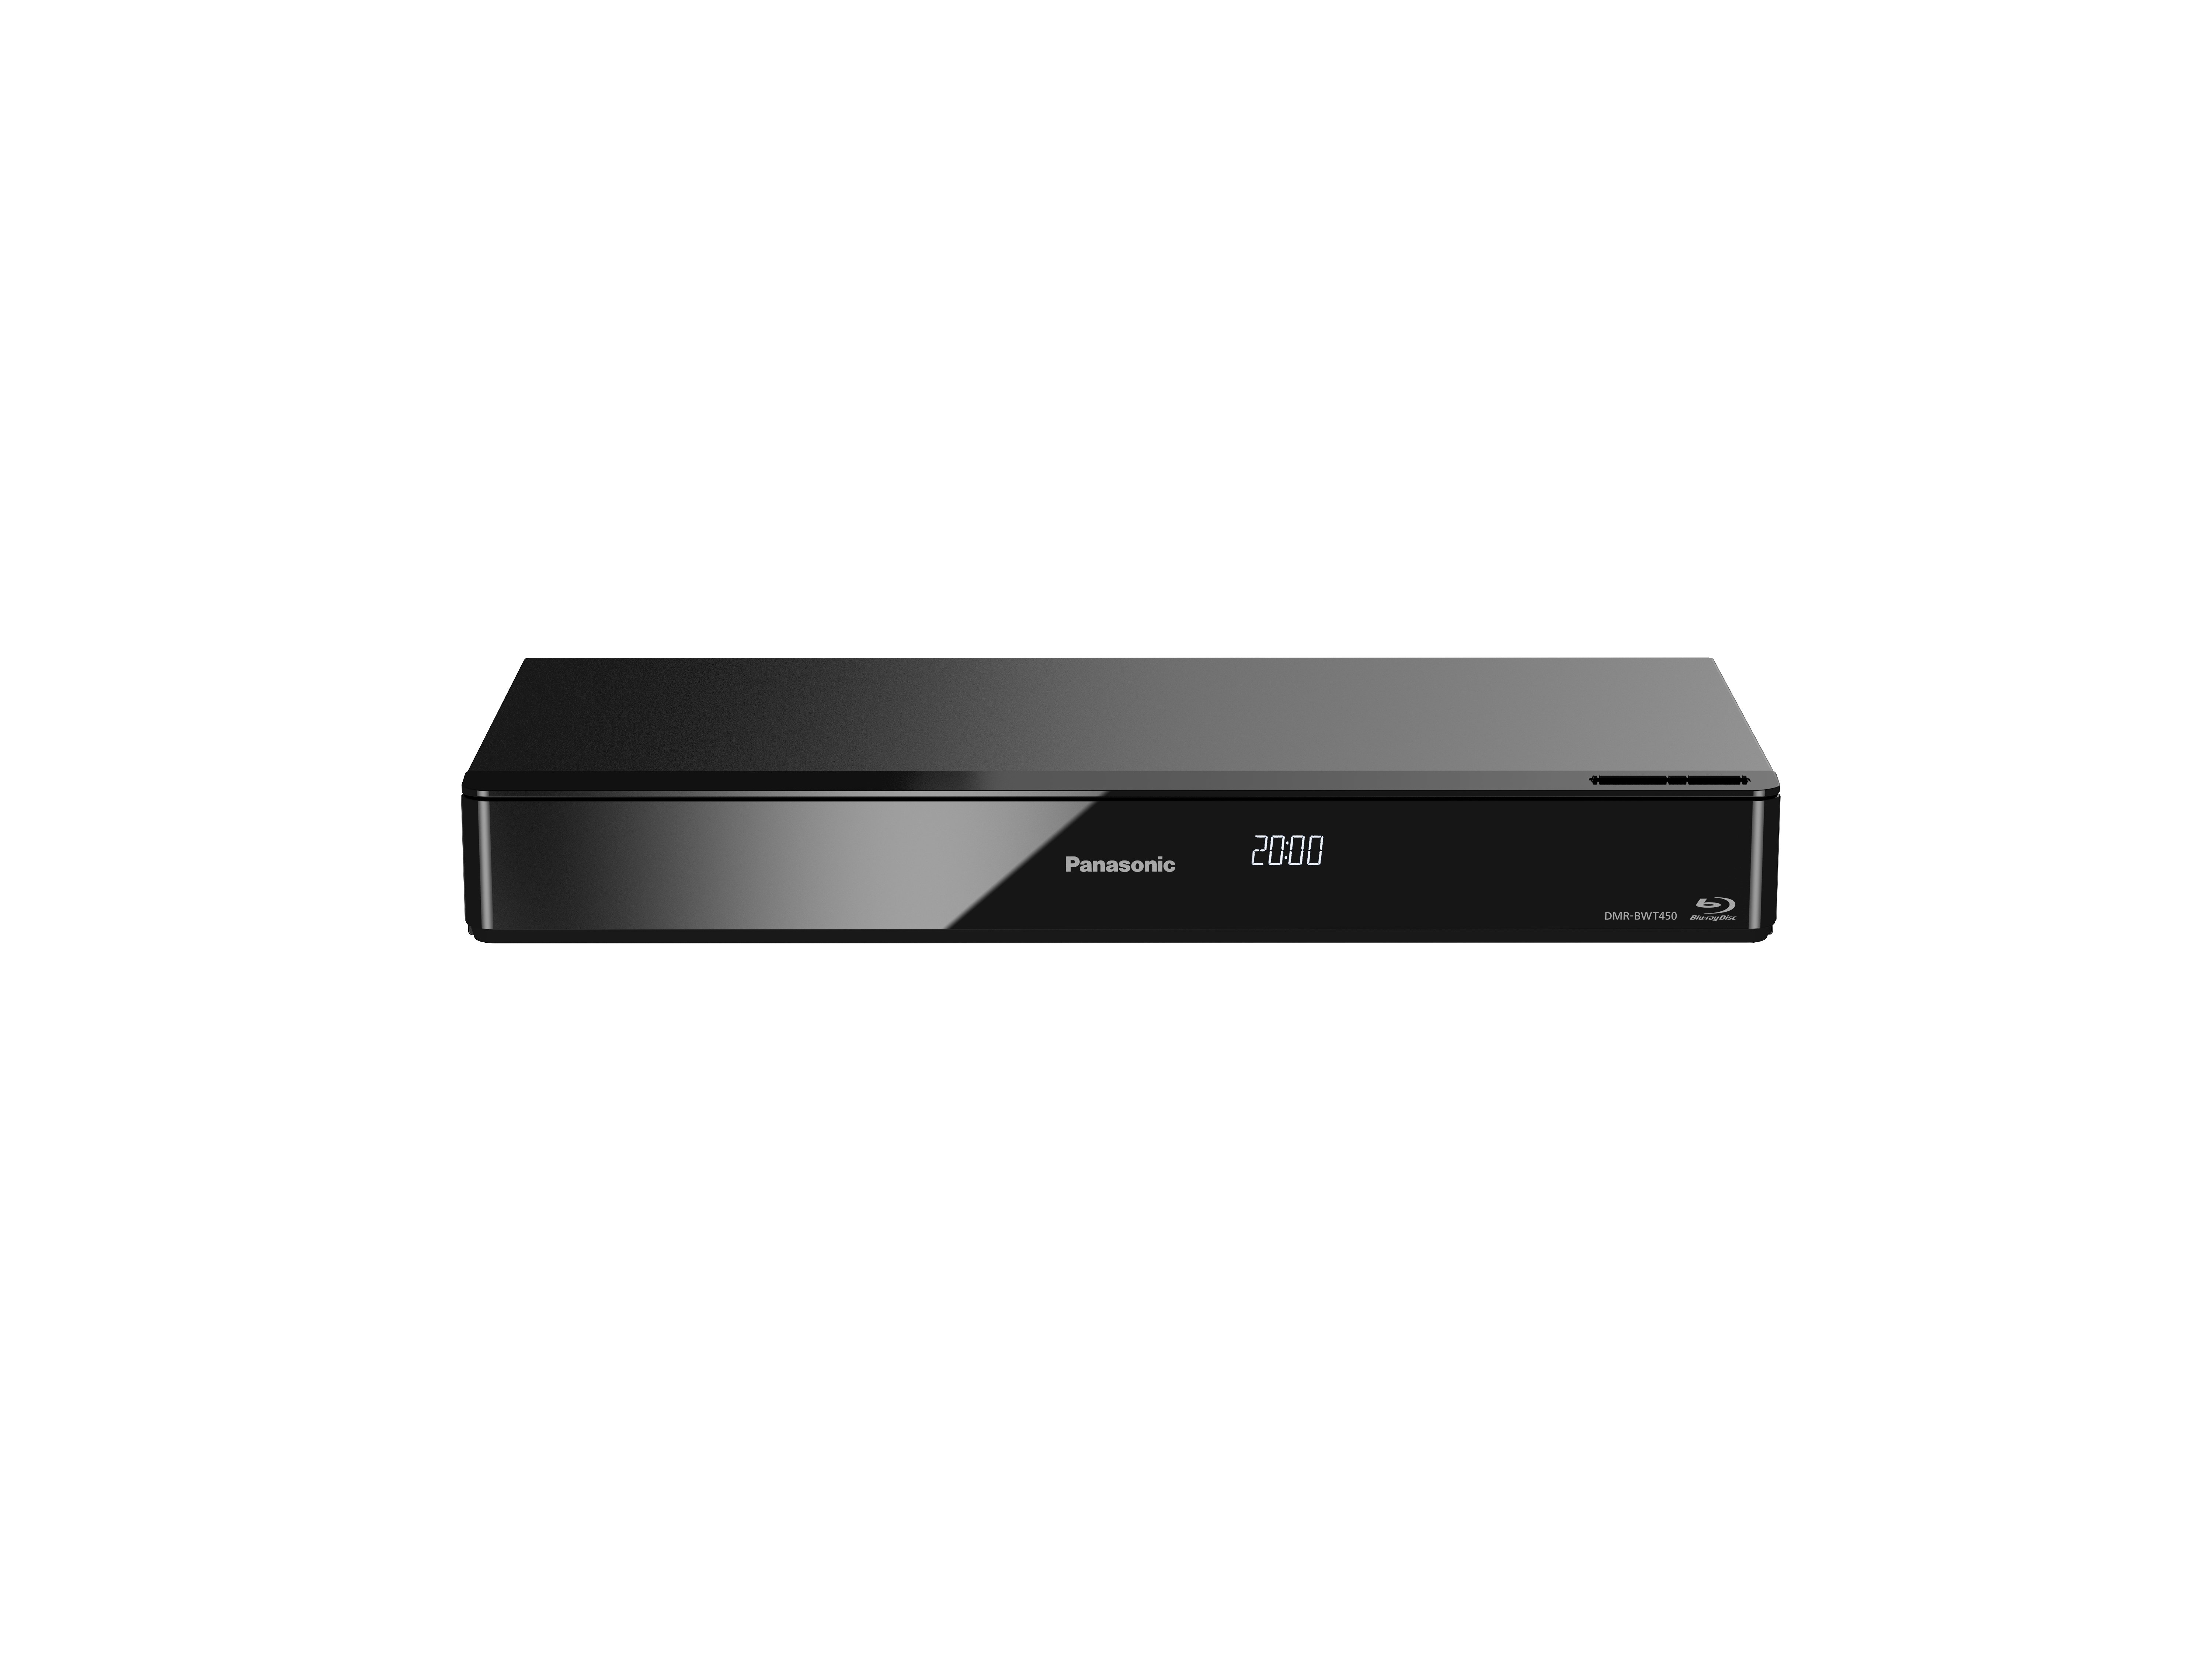 smart network hdd recorder with twin hd tuner panasonic autos post. Black Bedroom Furniture Sets. Home Design Ideas